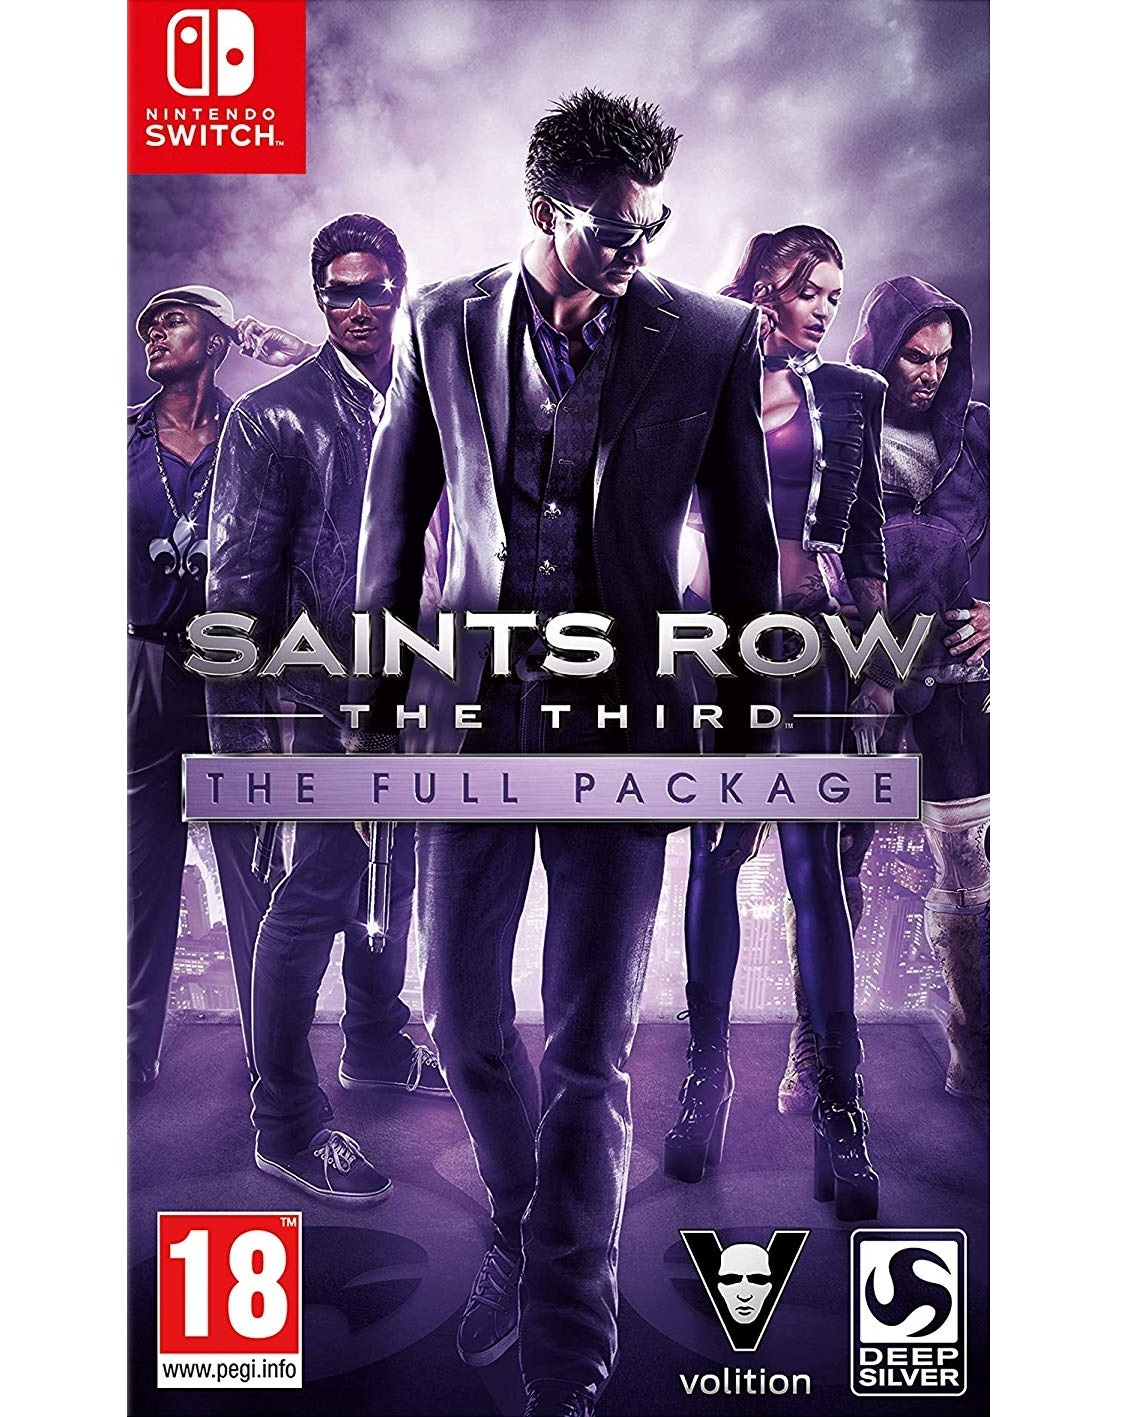 Saints Row The Third - The Full Package - Switch